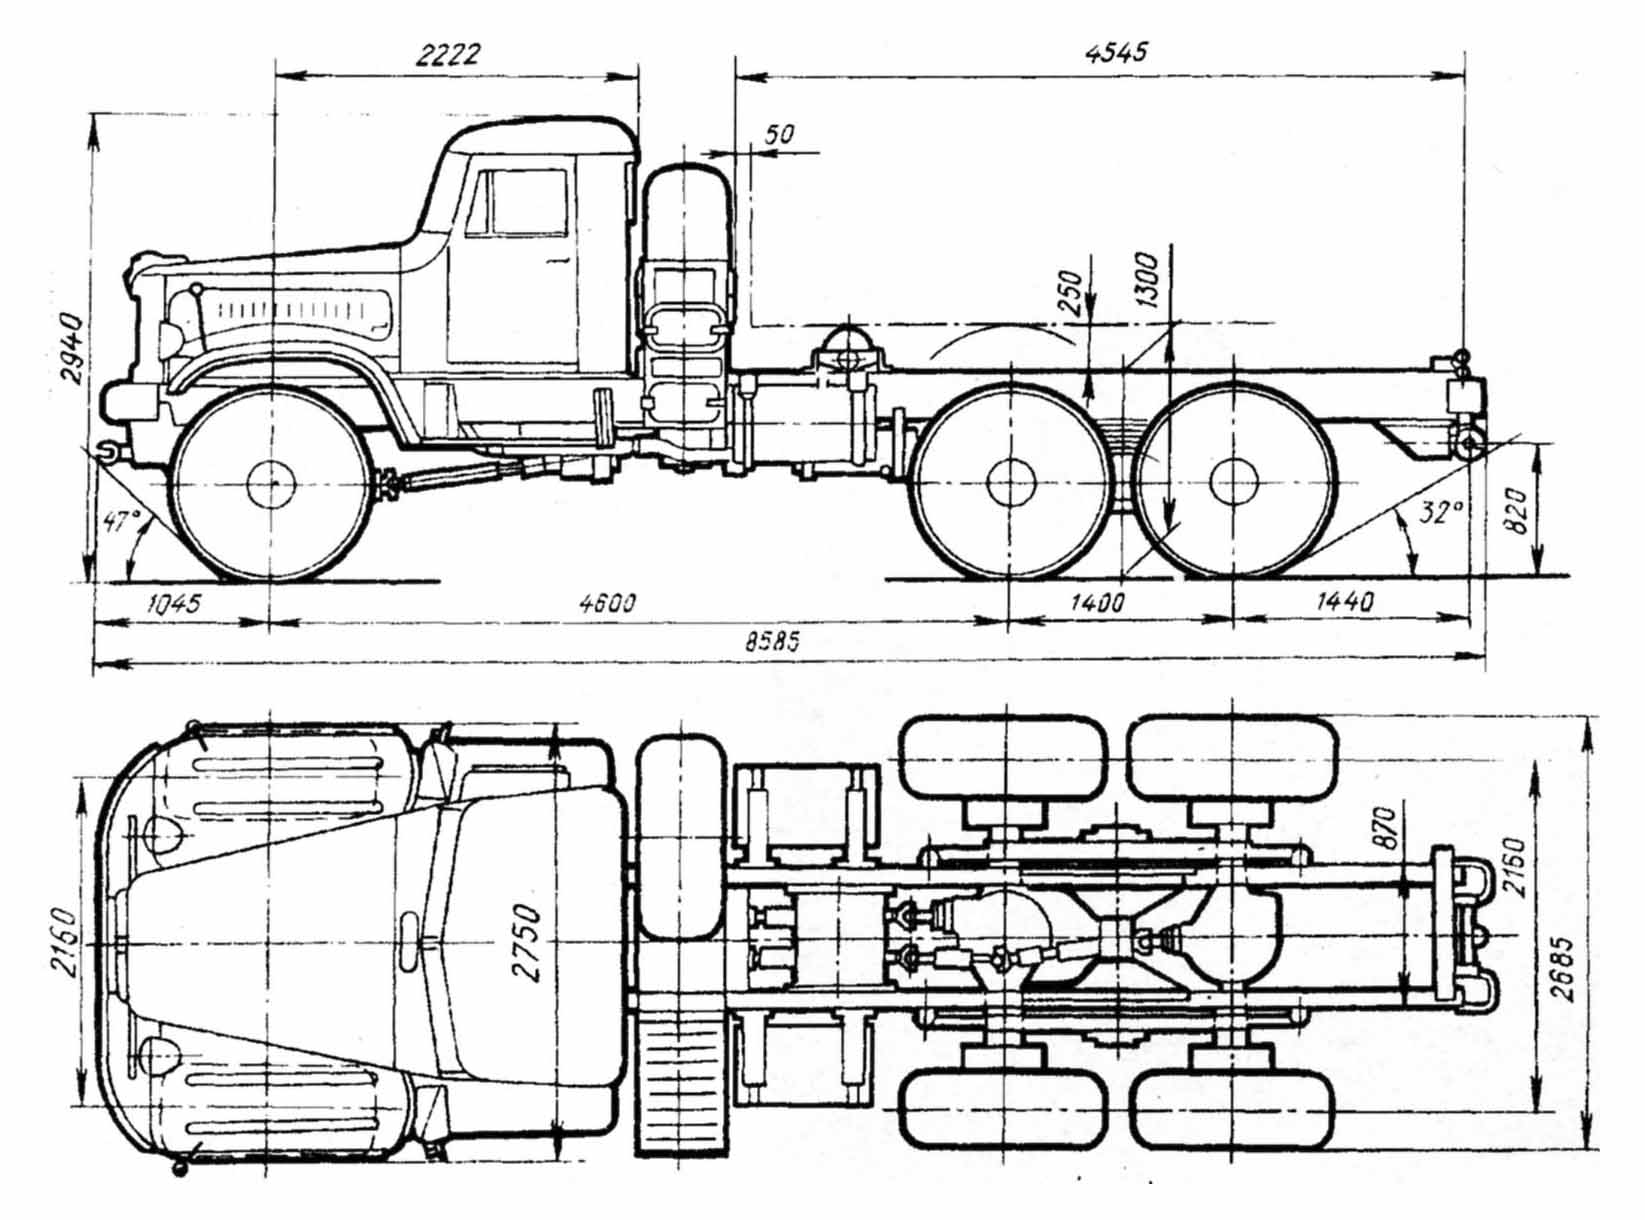 KrAZ-255 blueprint